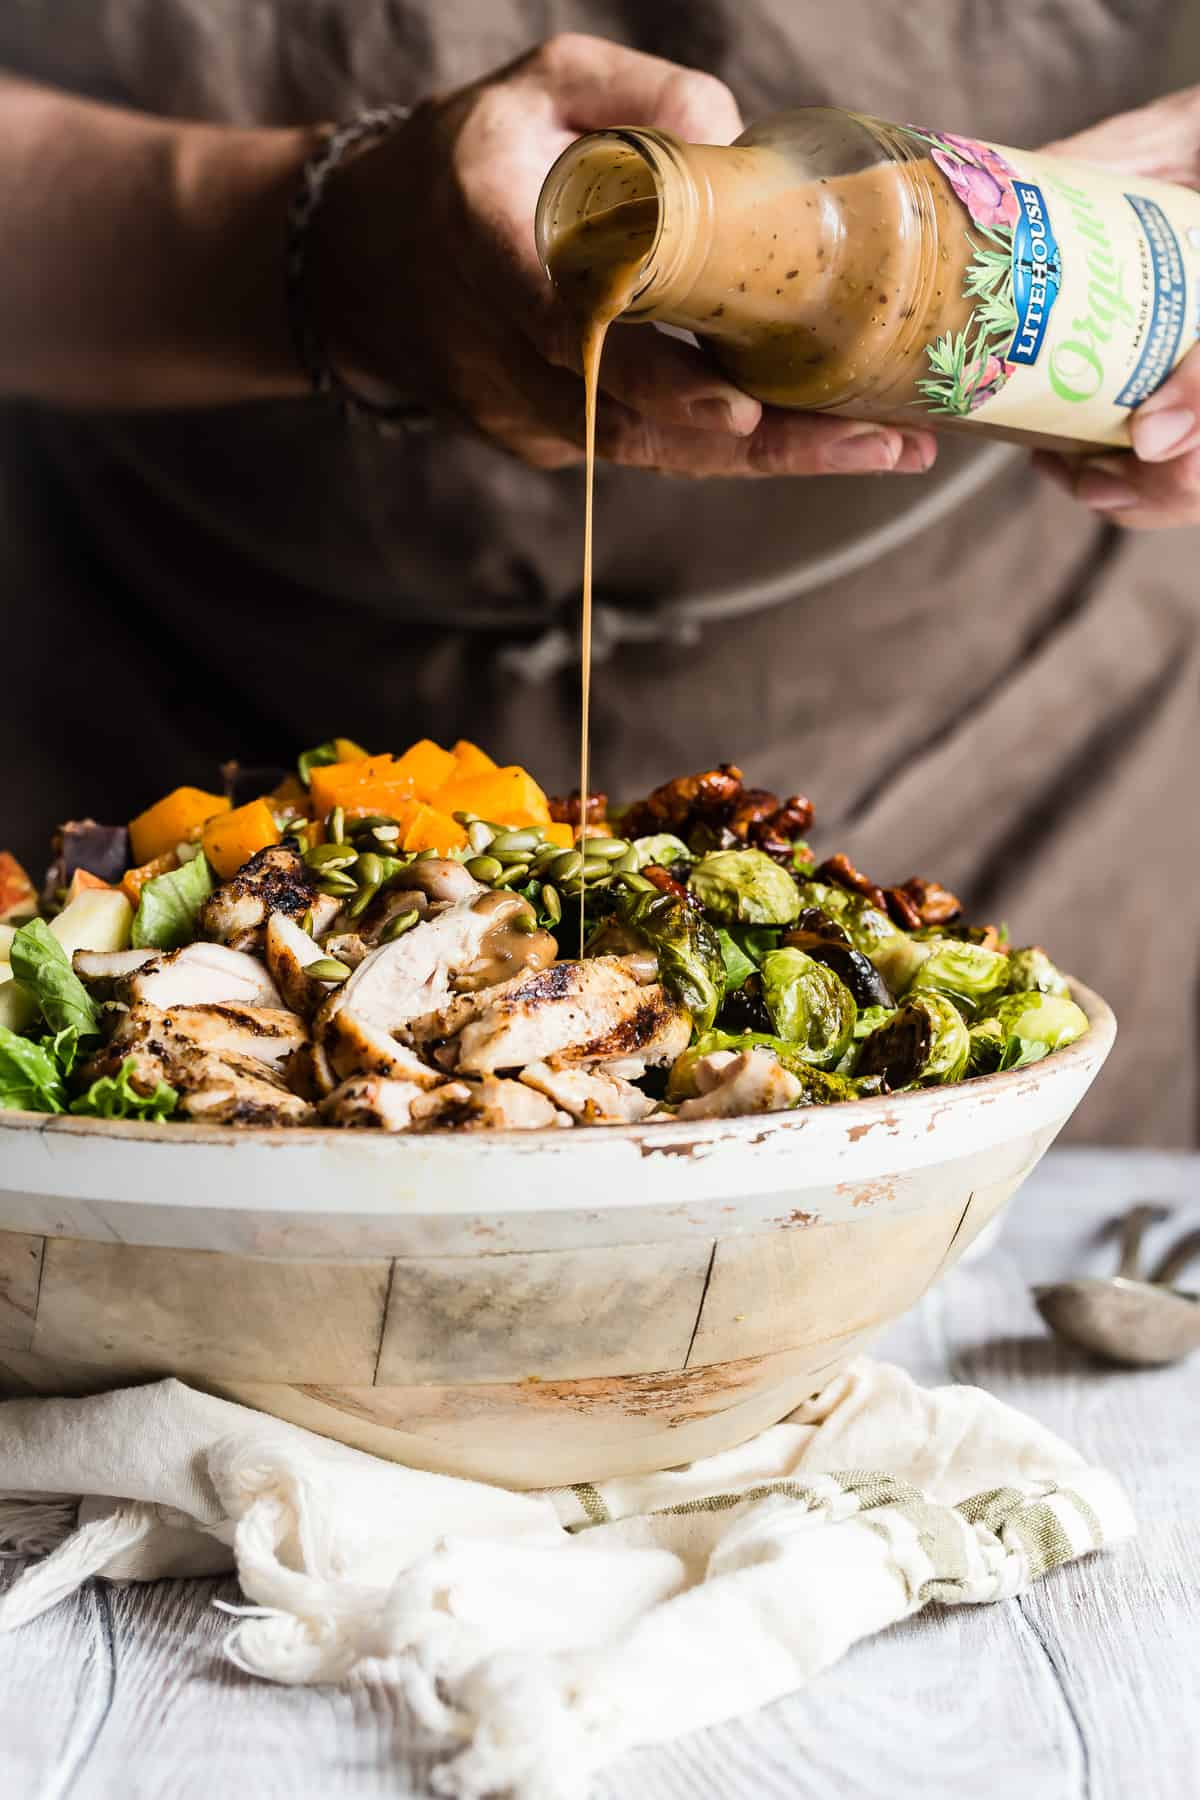 Epic fall salad tossed in a balsamic rosemary dressing